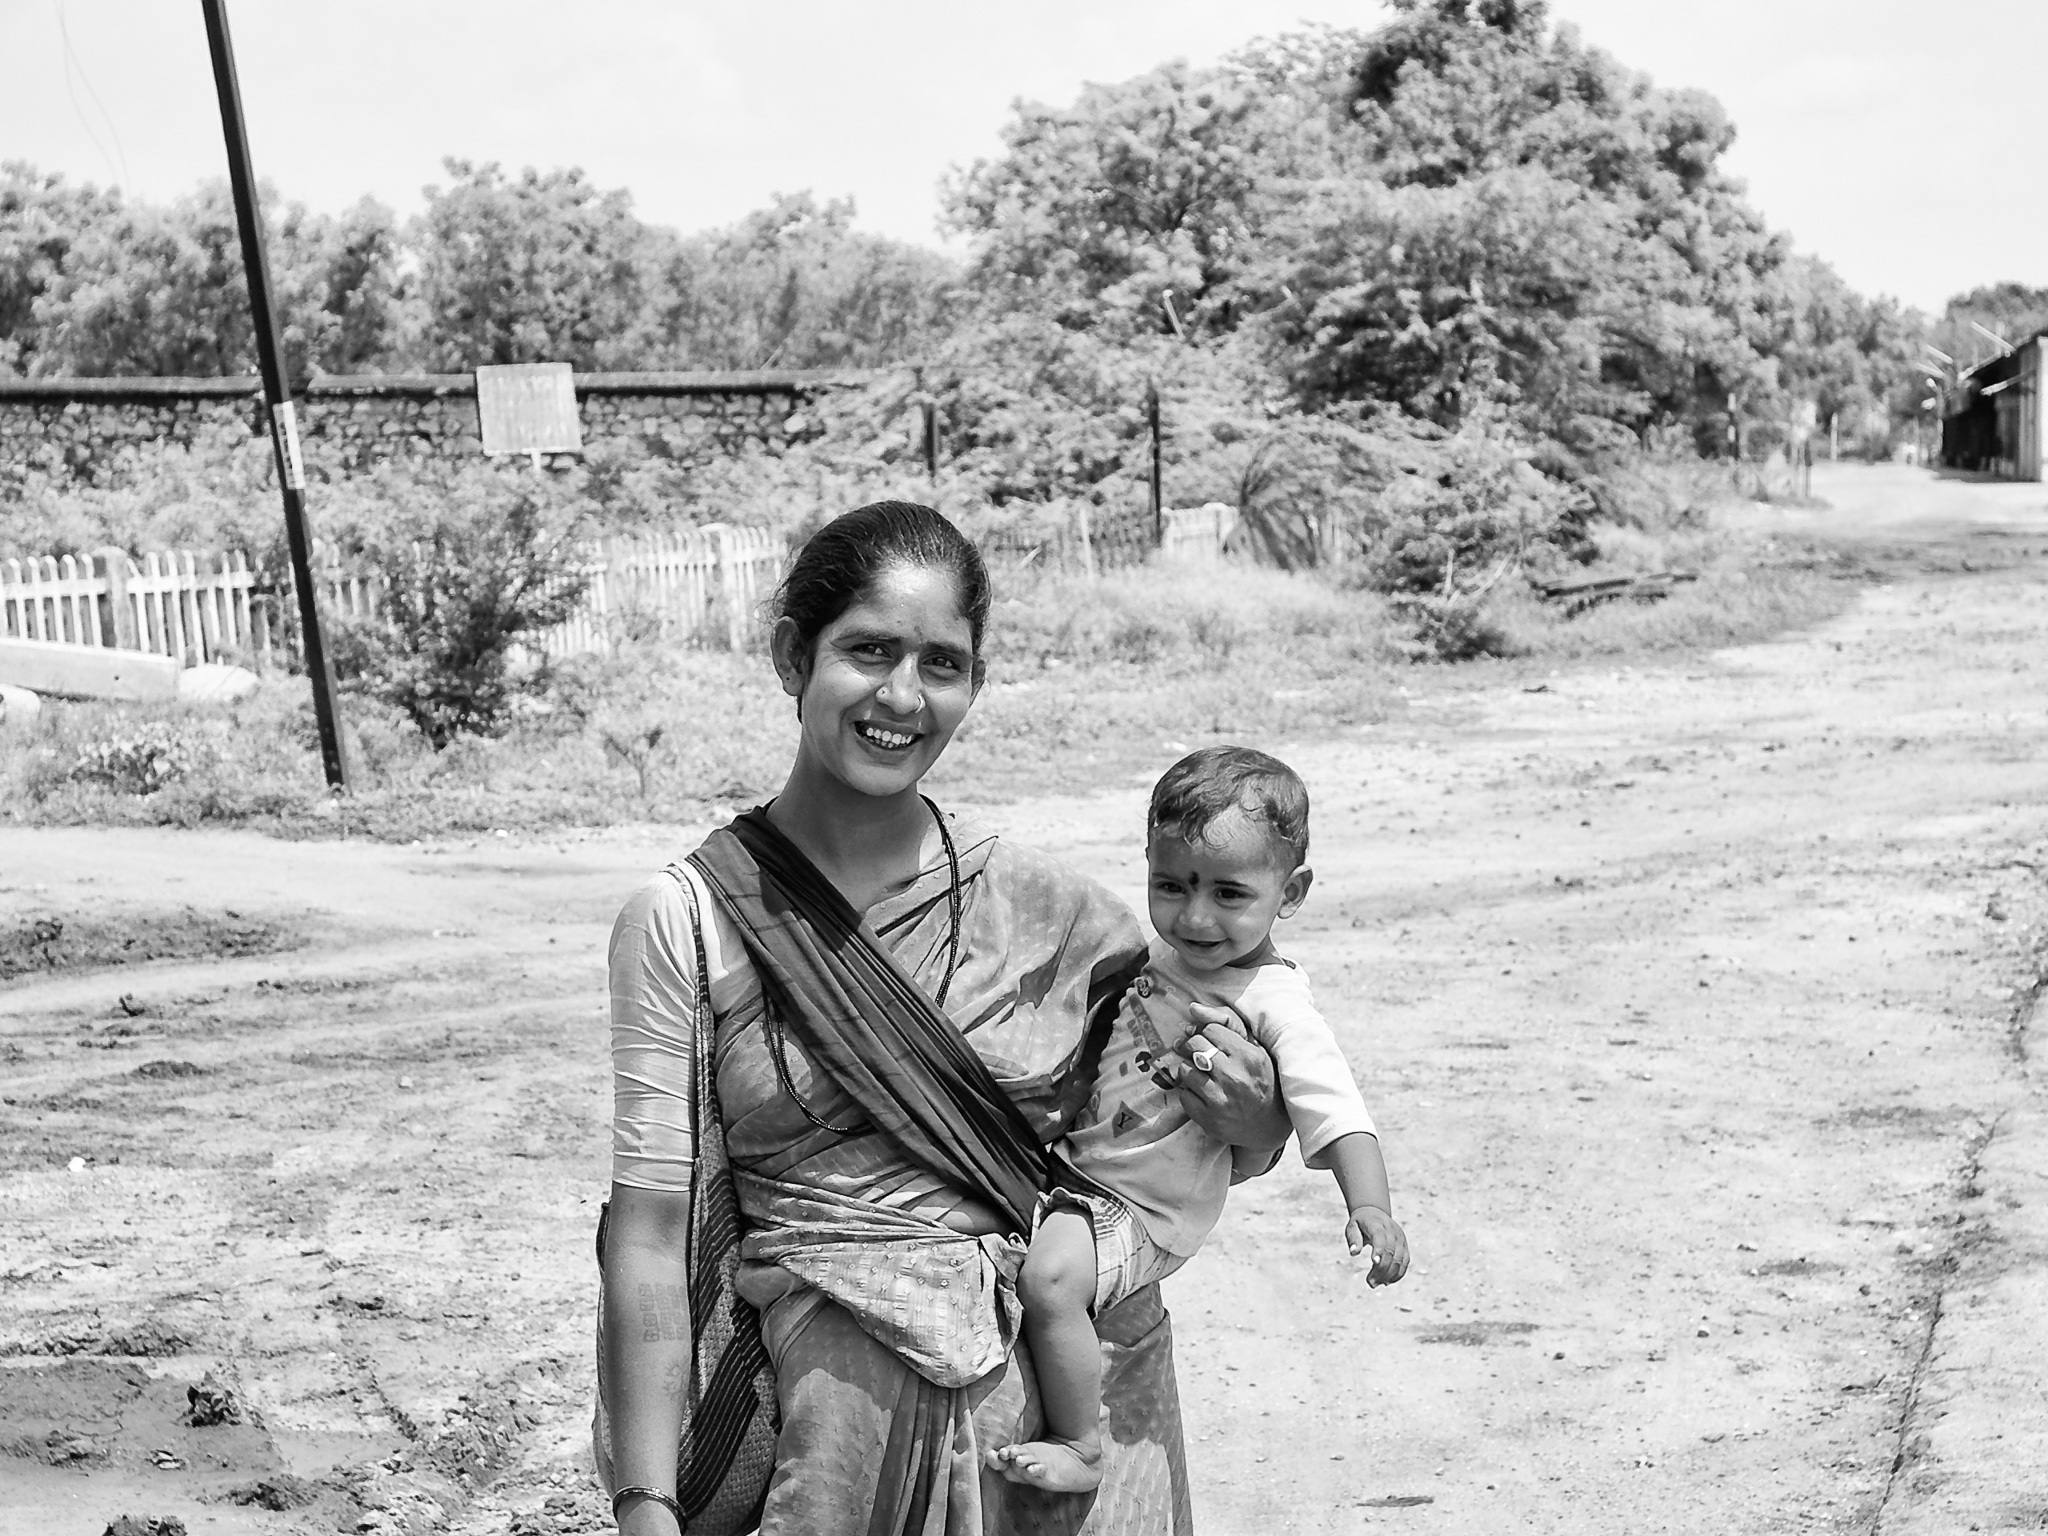 A mother with her baby, from a nomadic tribe, on her way to their tent near the Railway station, Virudhunagar,  Tamil Nadu, India